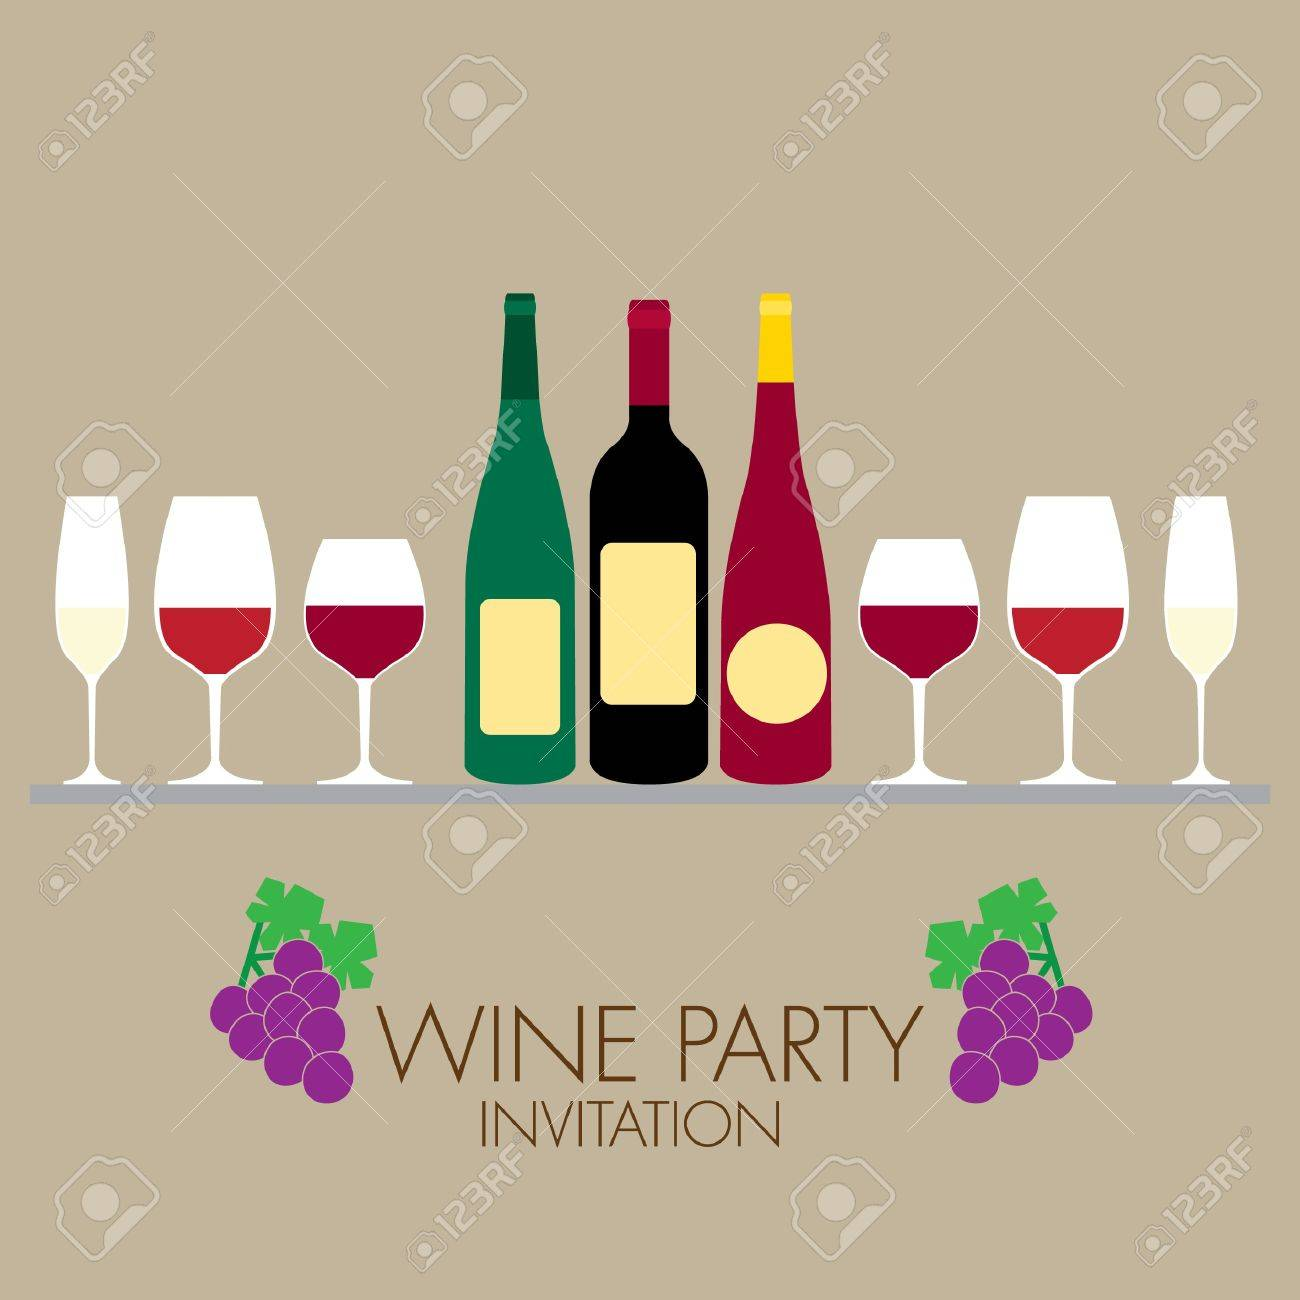 Wine Party Invitation With Simple Graphic Style Royalty Free ...